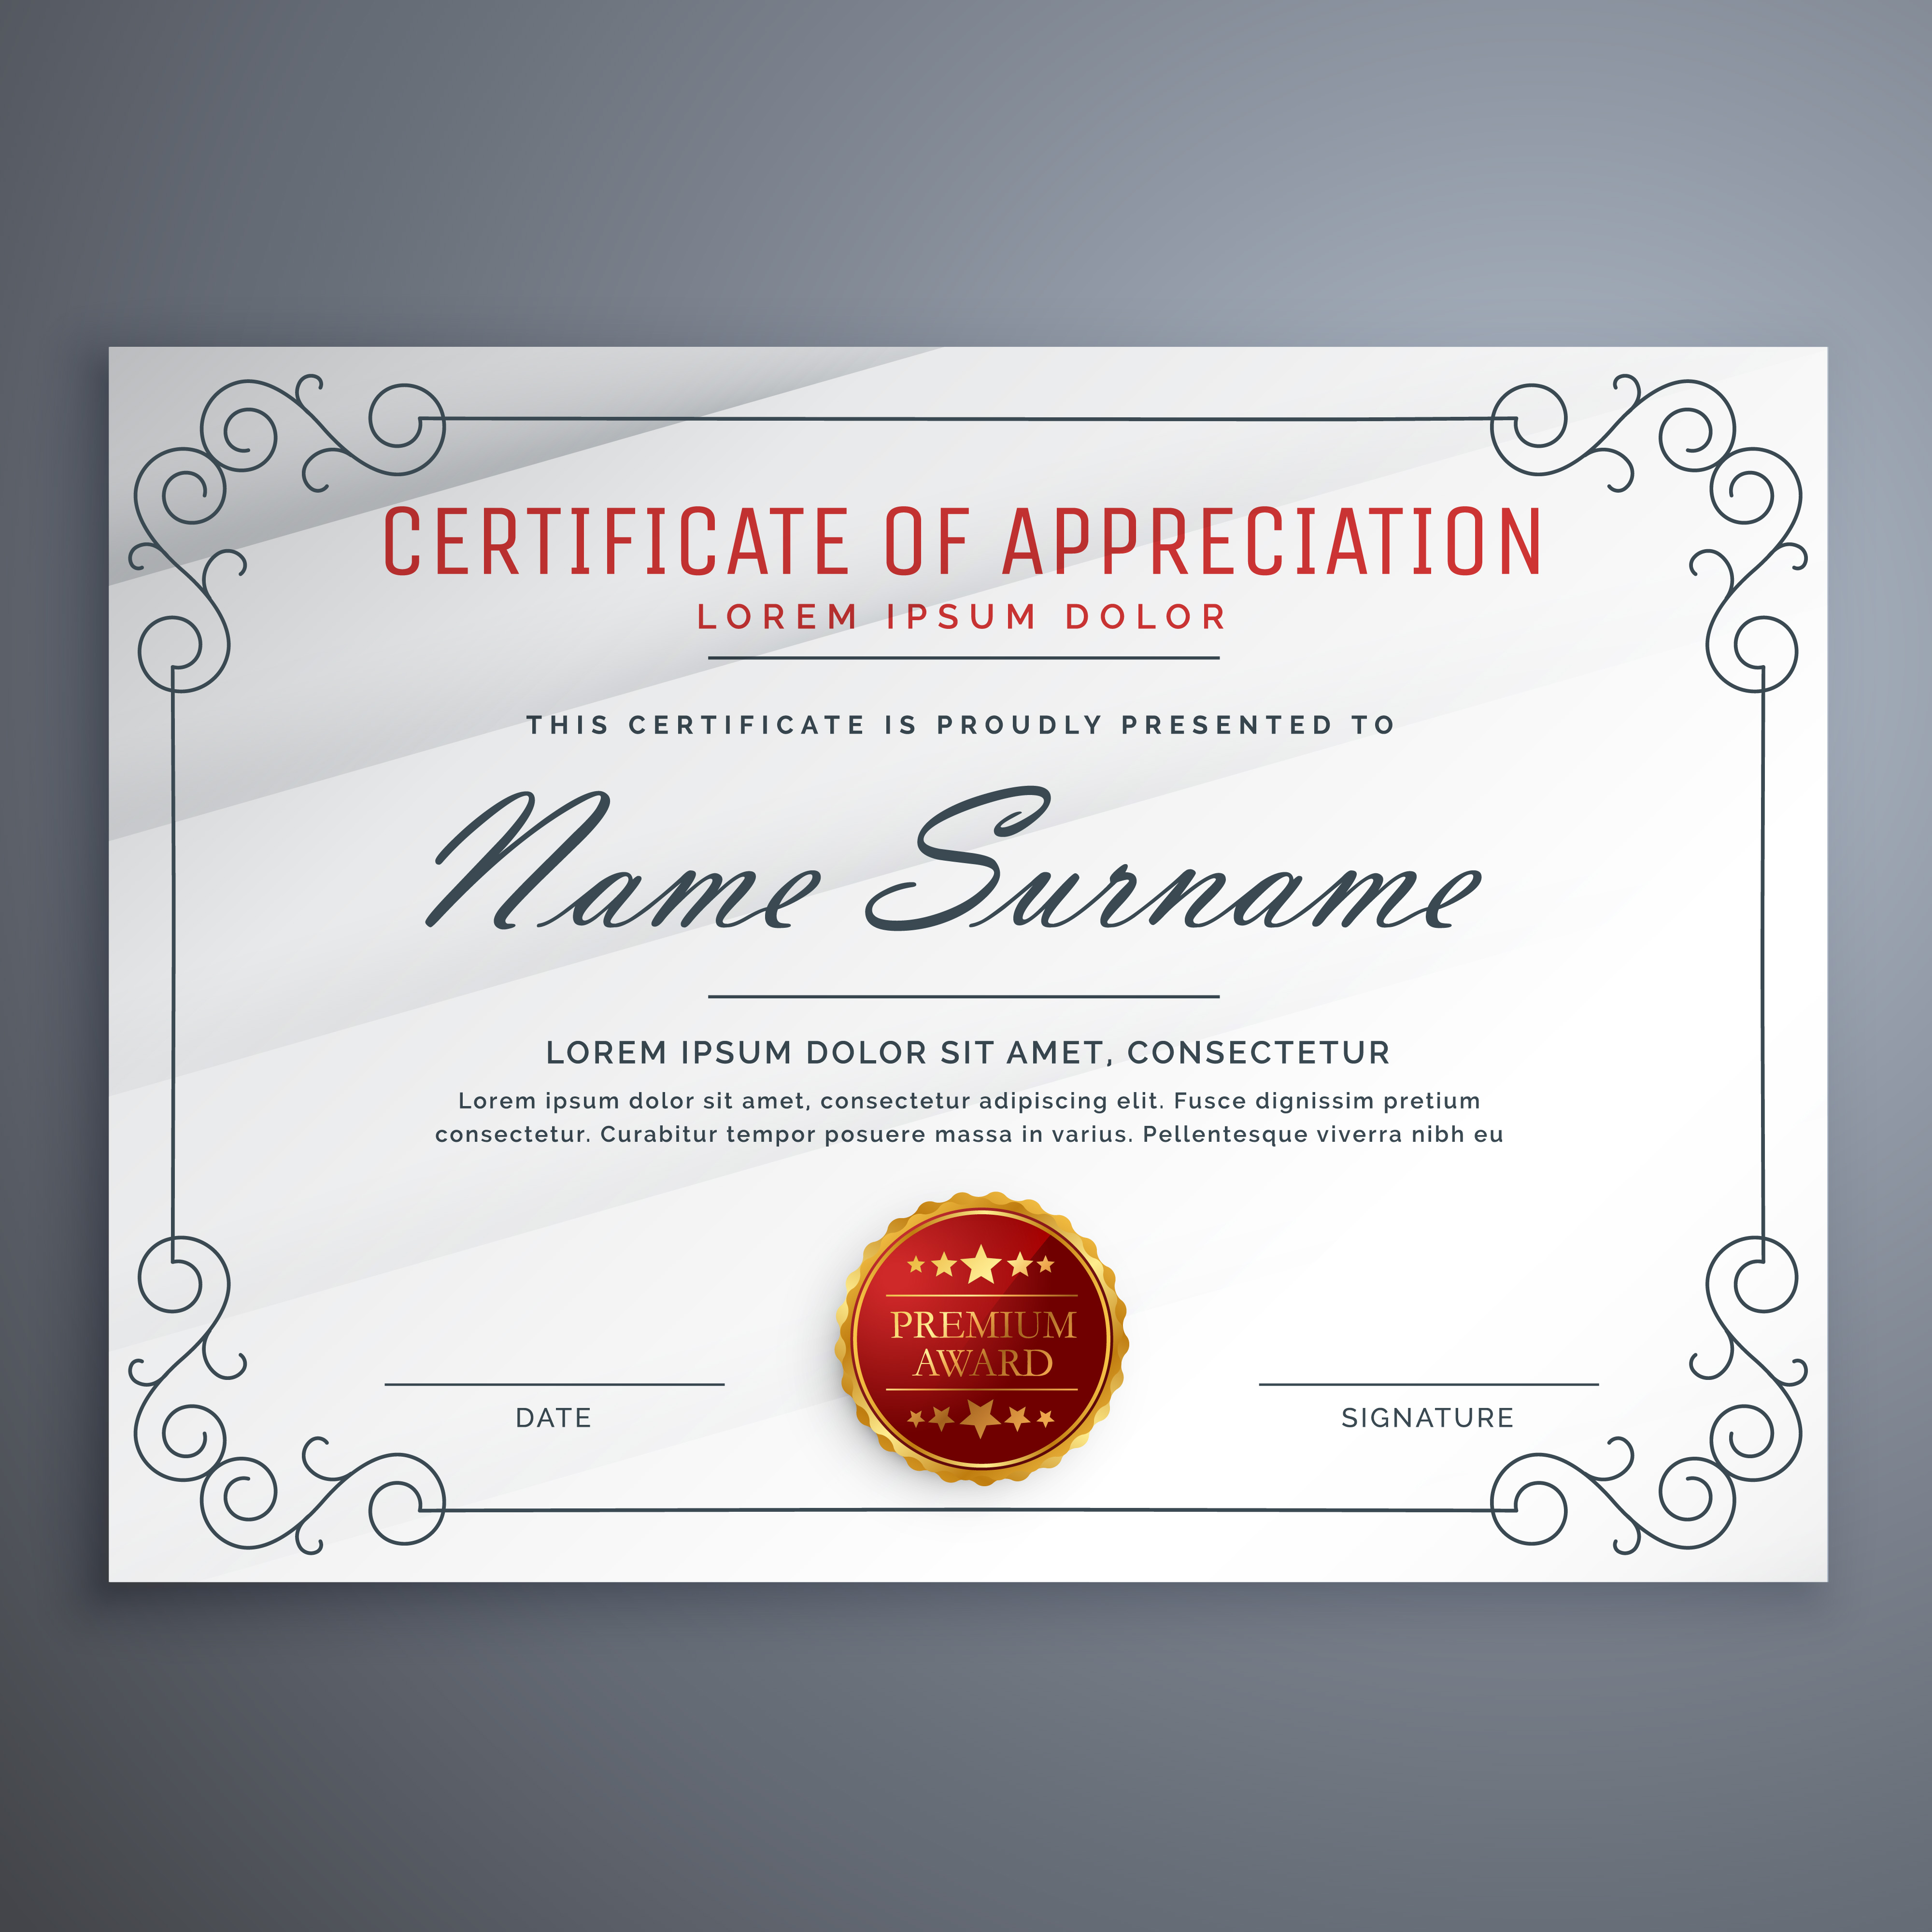 Certificate Background Free Vector Art - (37727 Free ...